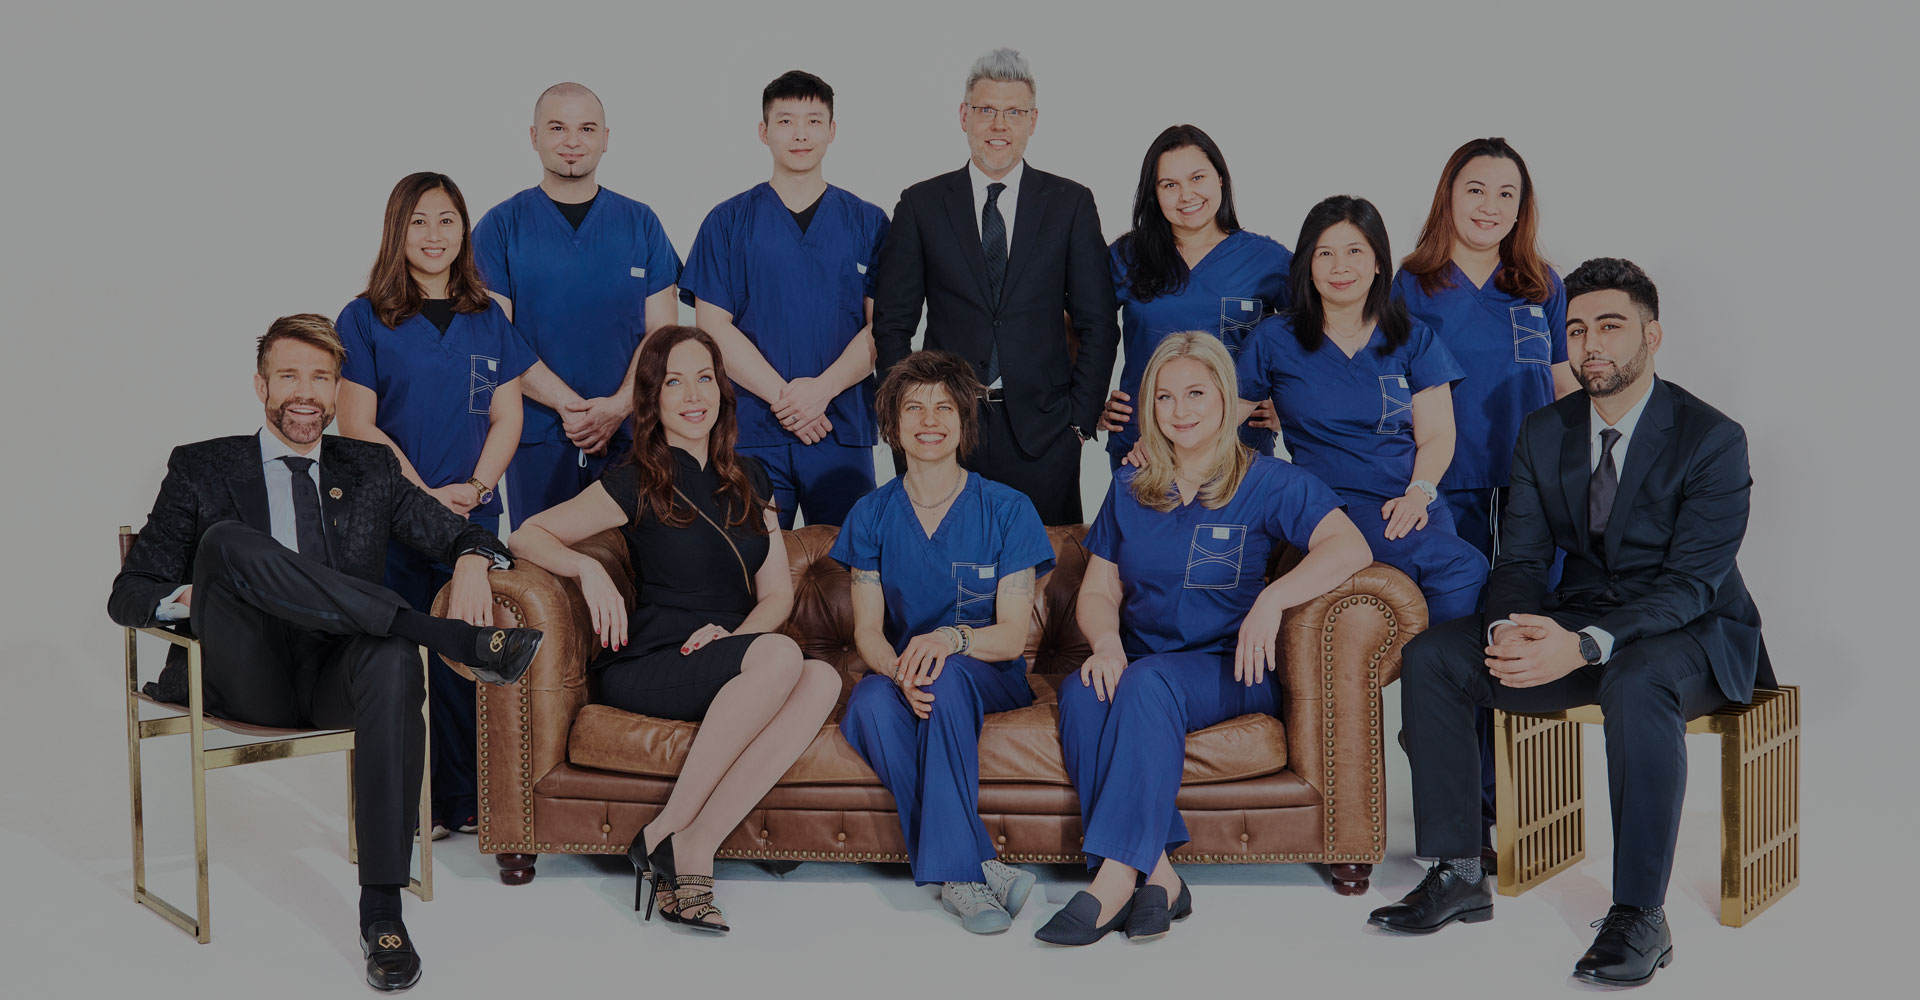 Hair-Transplant-Clinic-Personnel